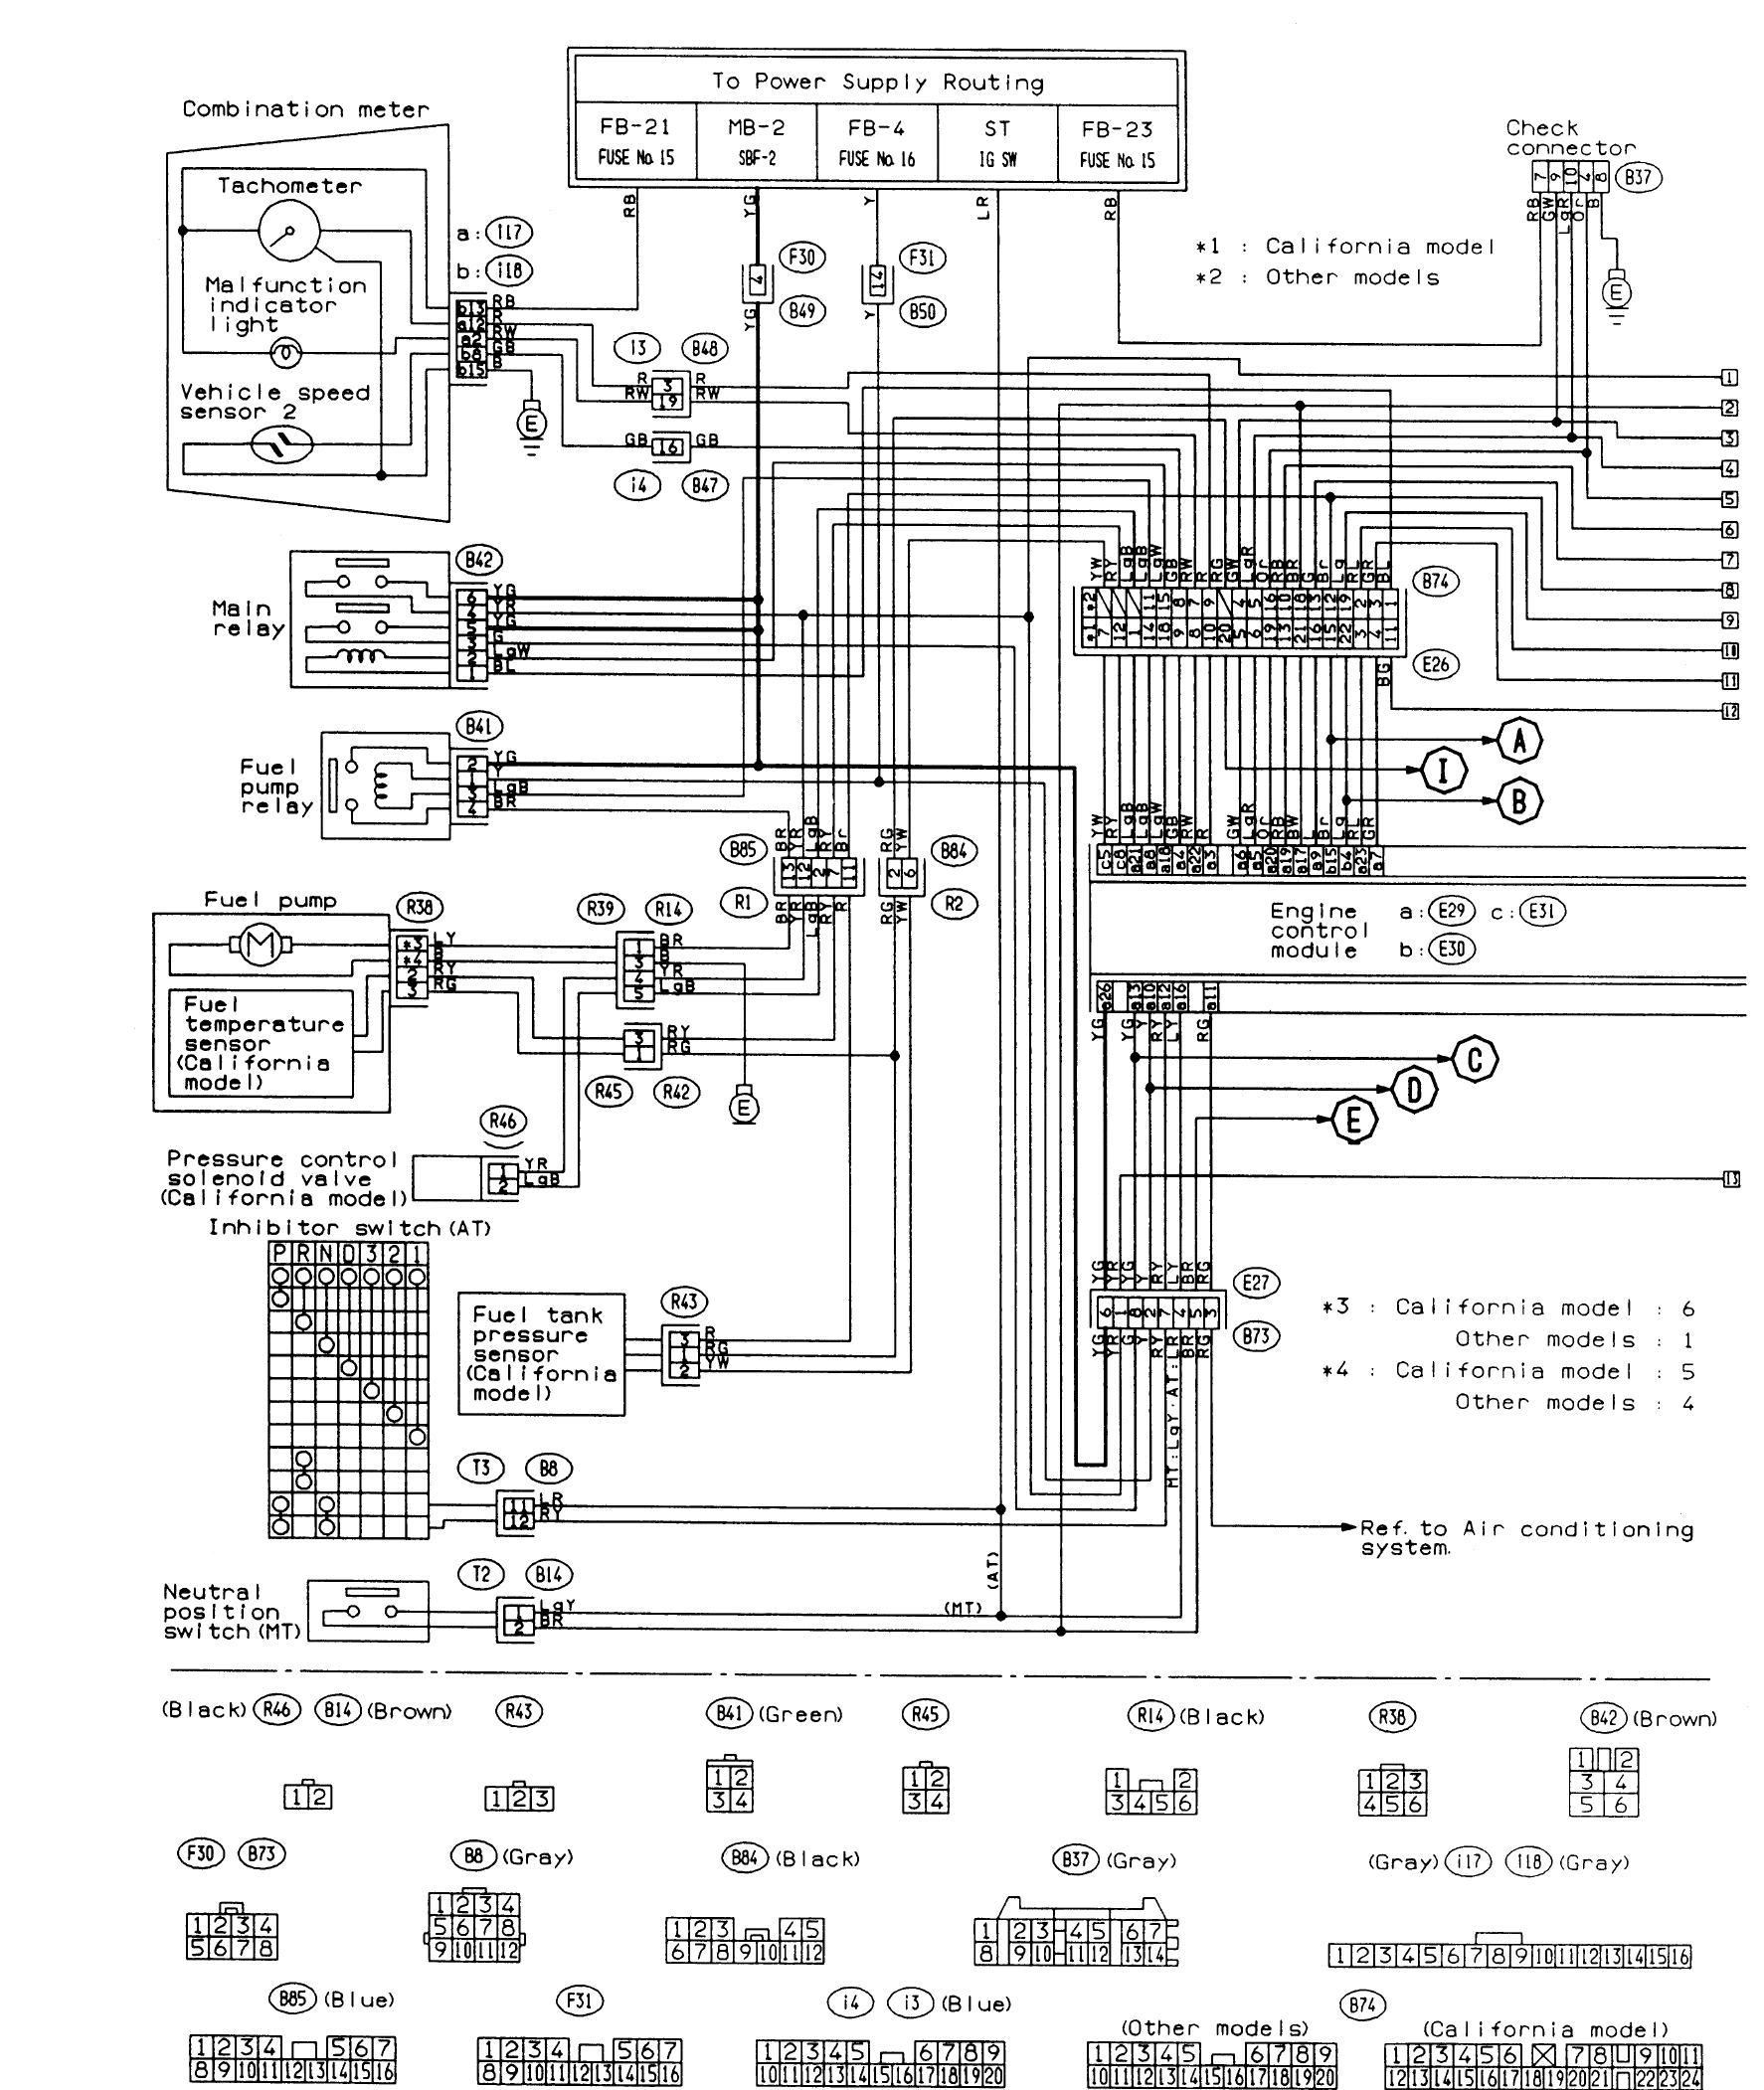 subaru ecu wiring diagram FUSlrCX 2002 wrx wiring diagram 24v trolling motor wiring diagram \u2022 wiring  at readyjetset.co